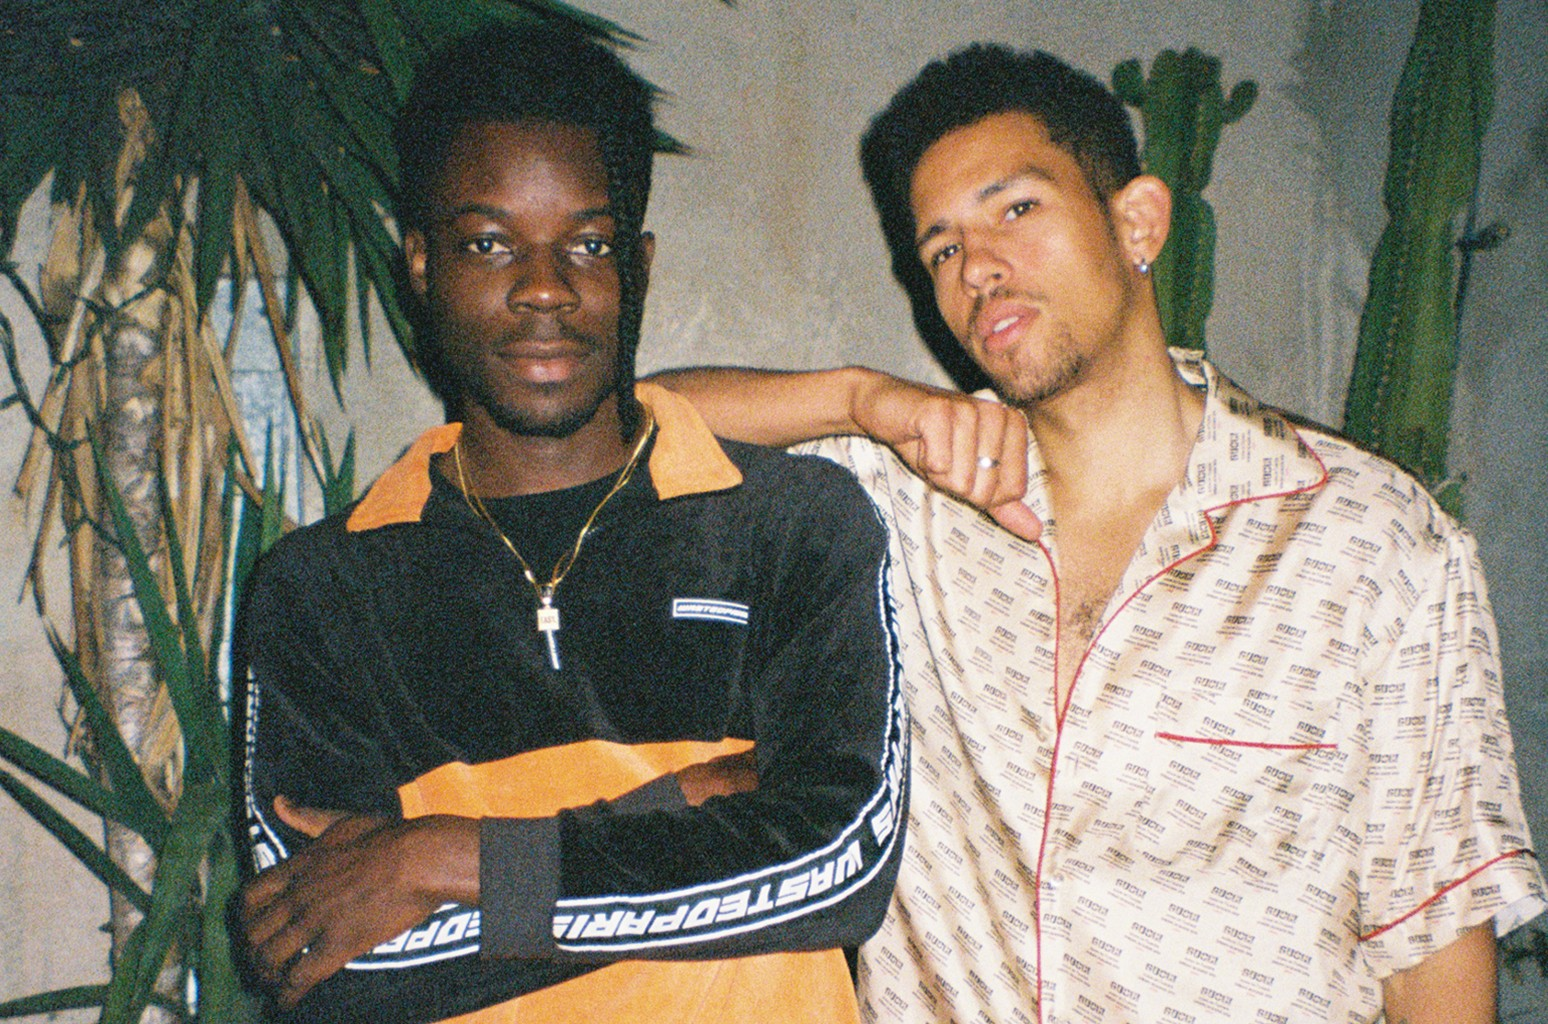 Thutmose and NoMBe